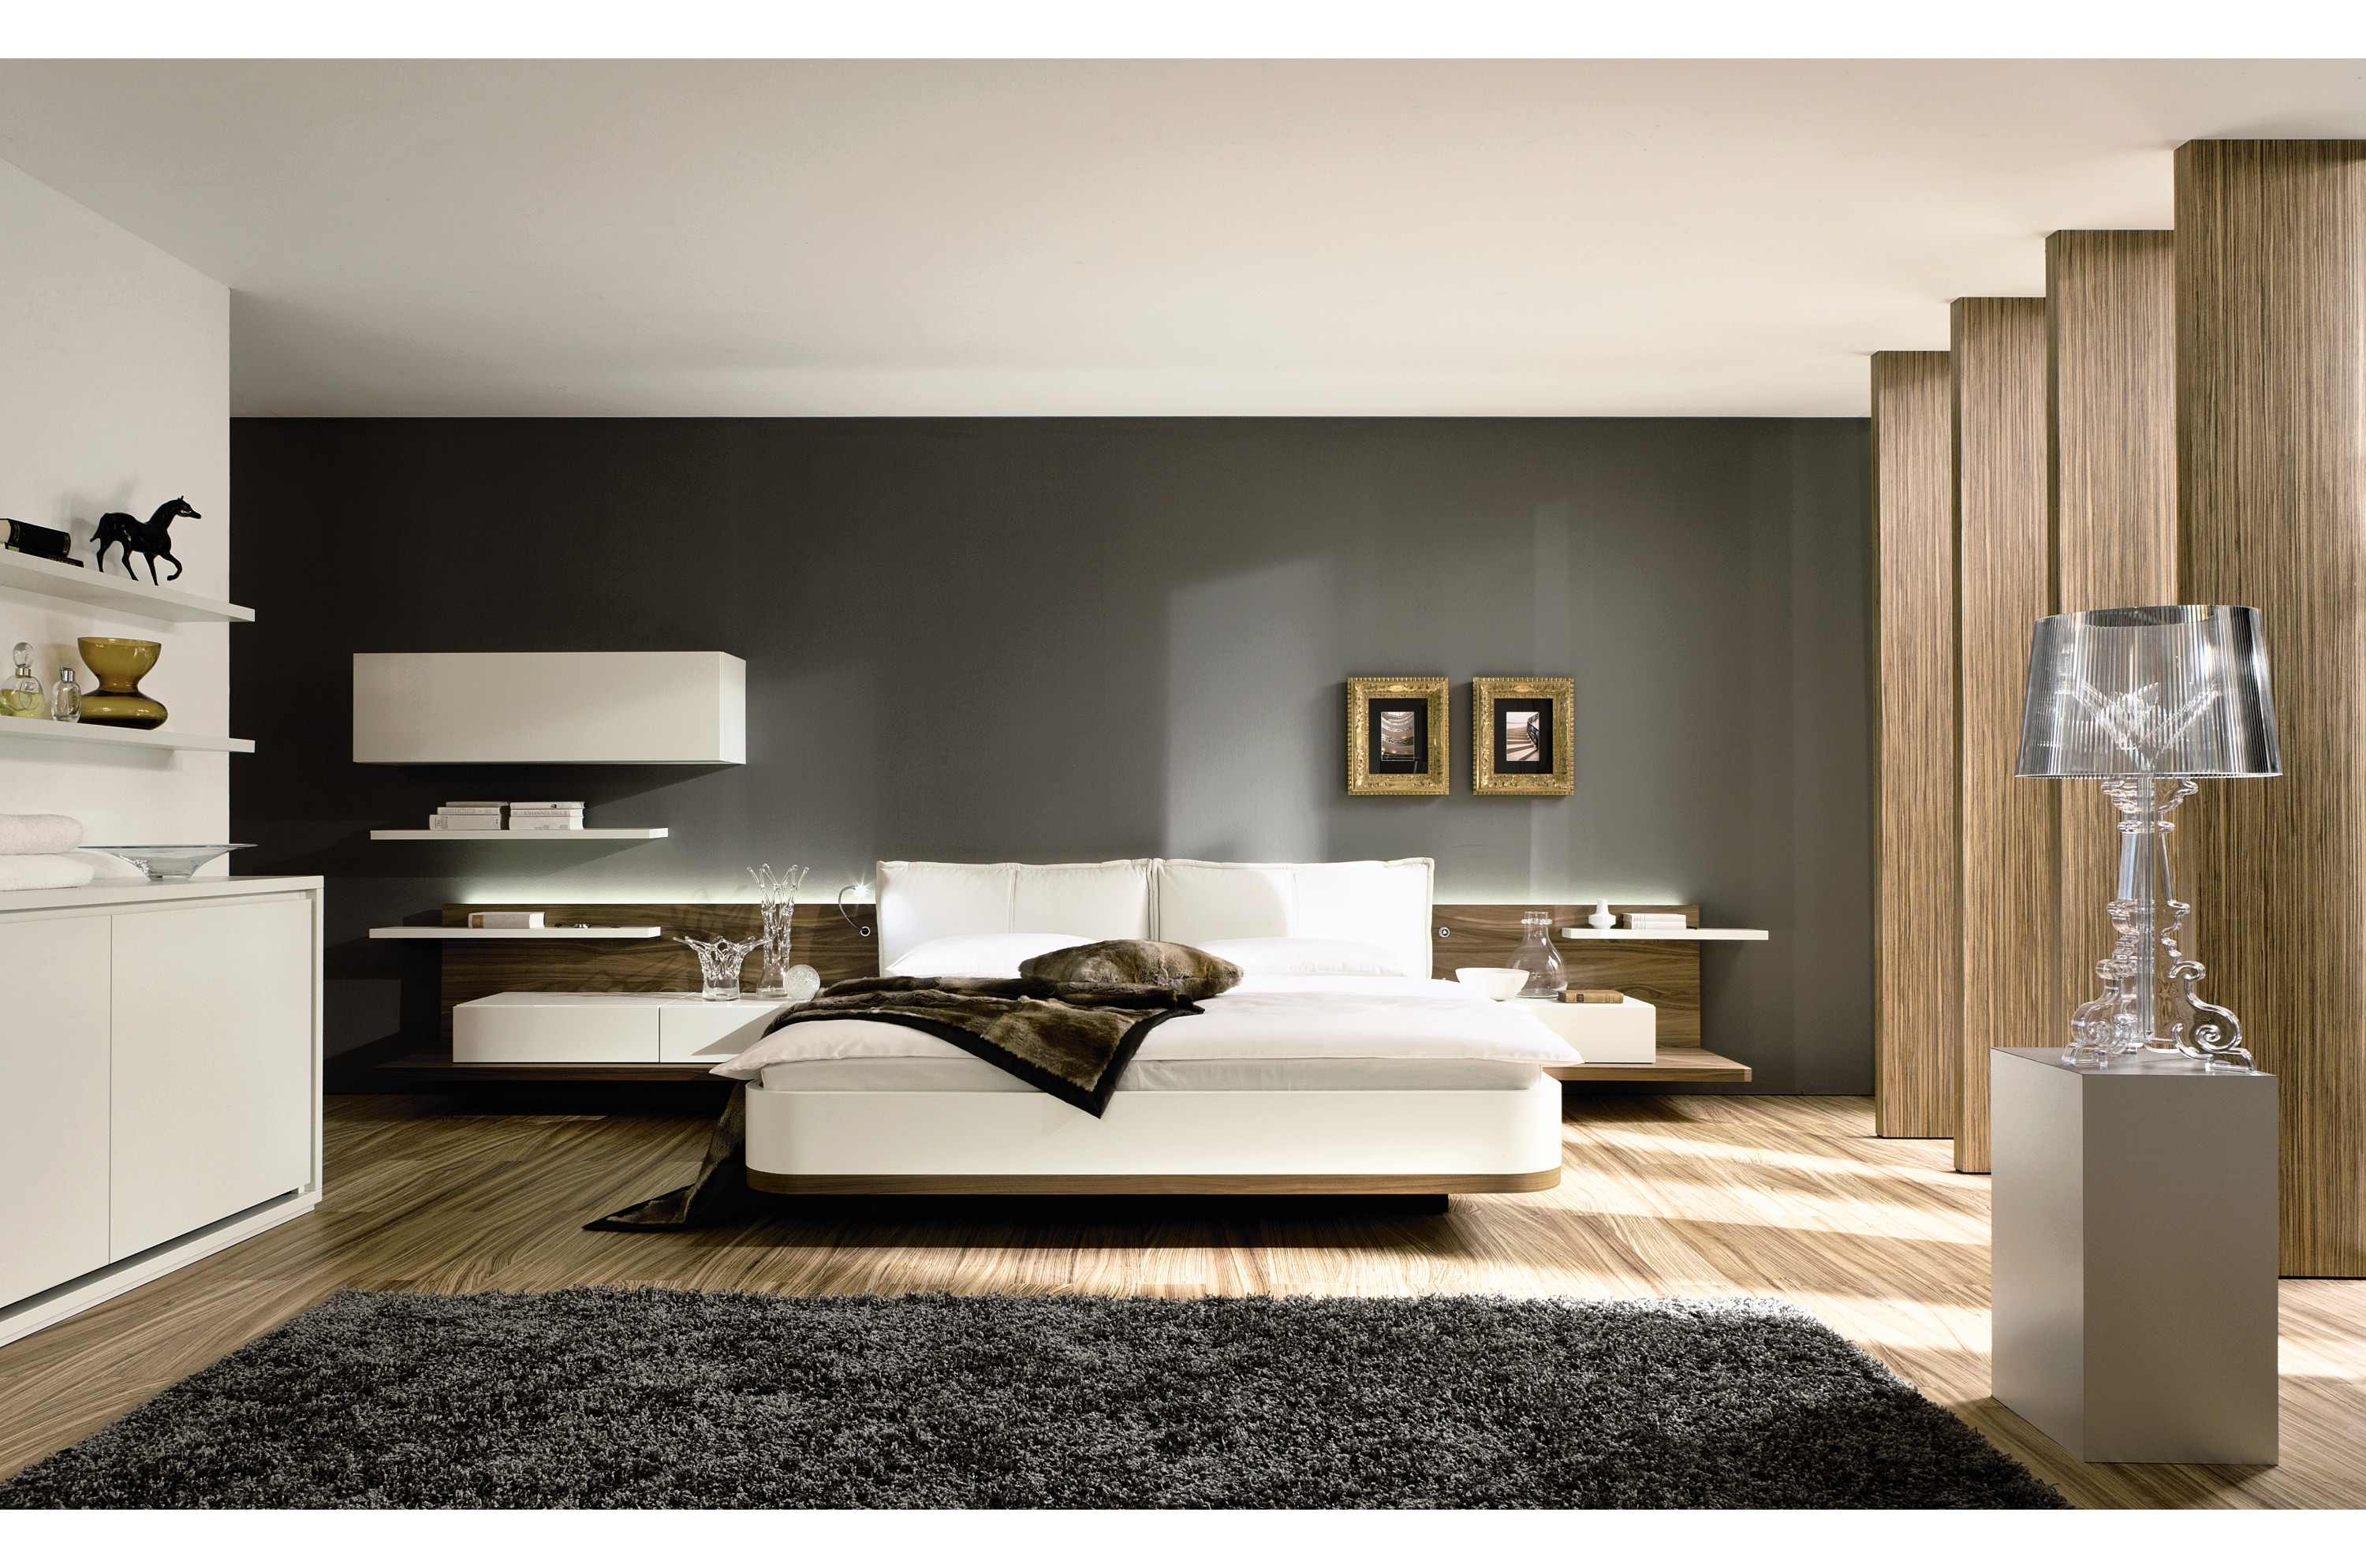 Modern bedroom innovation bedroom ideas interior design for New bedroom designs photos